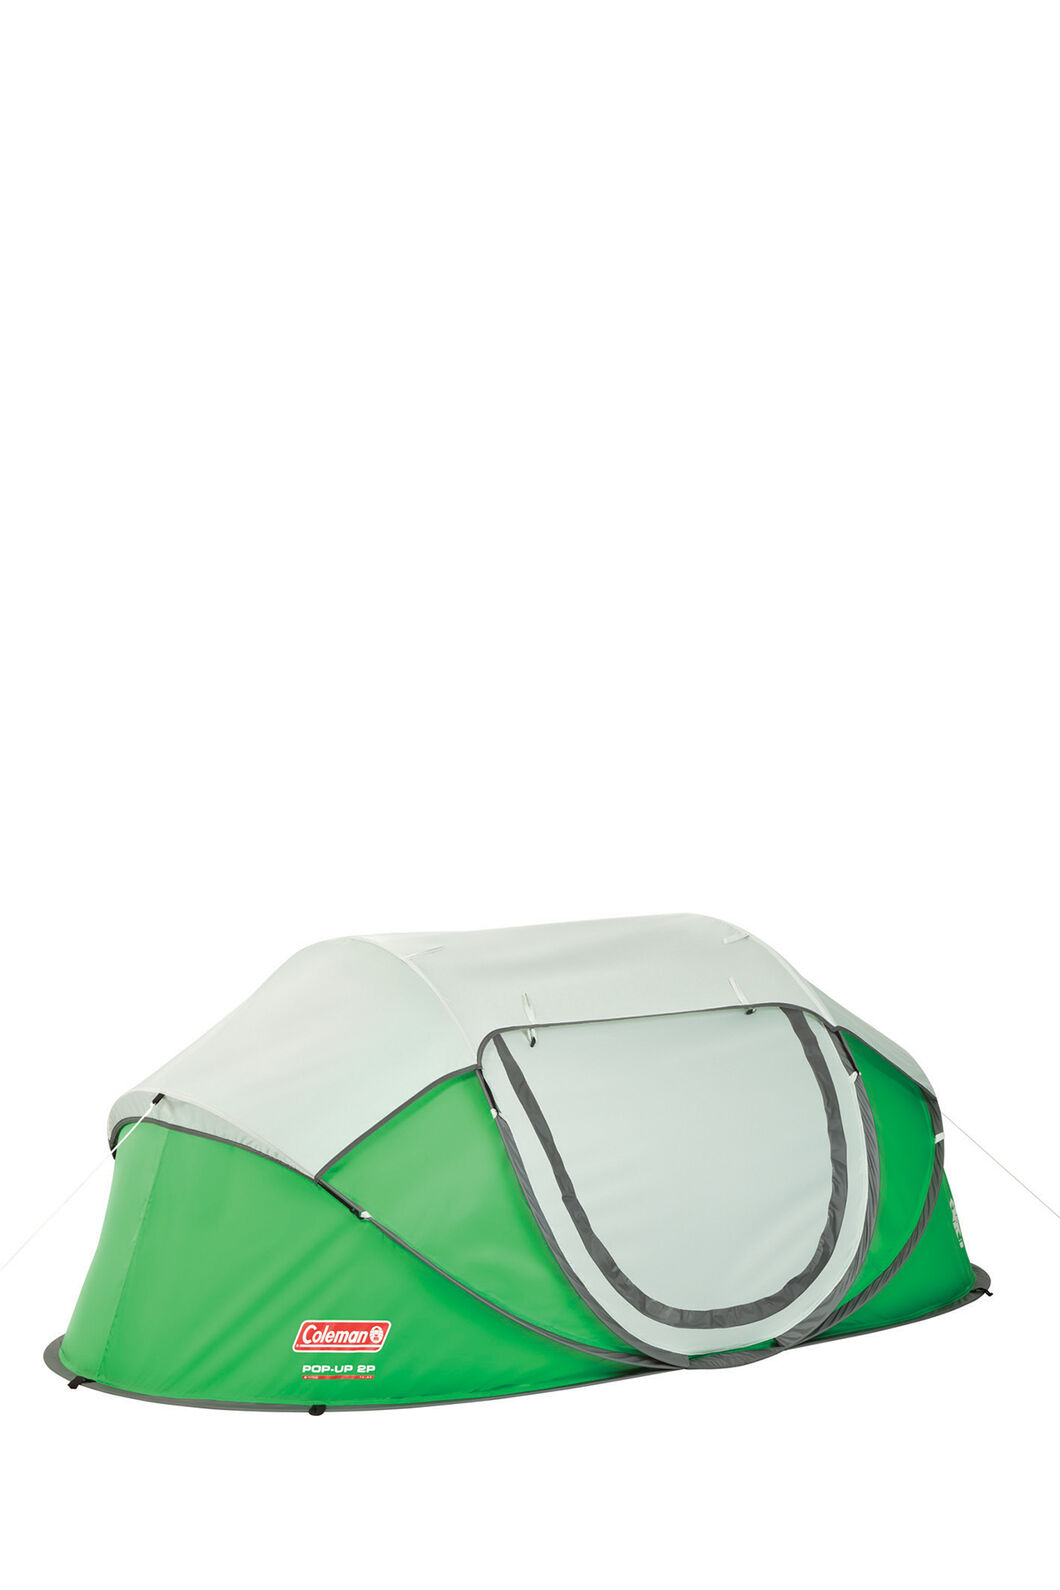 Coleman Pop Up 2 Person Instant Tent, None, hi-res